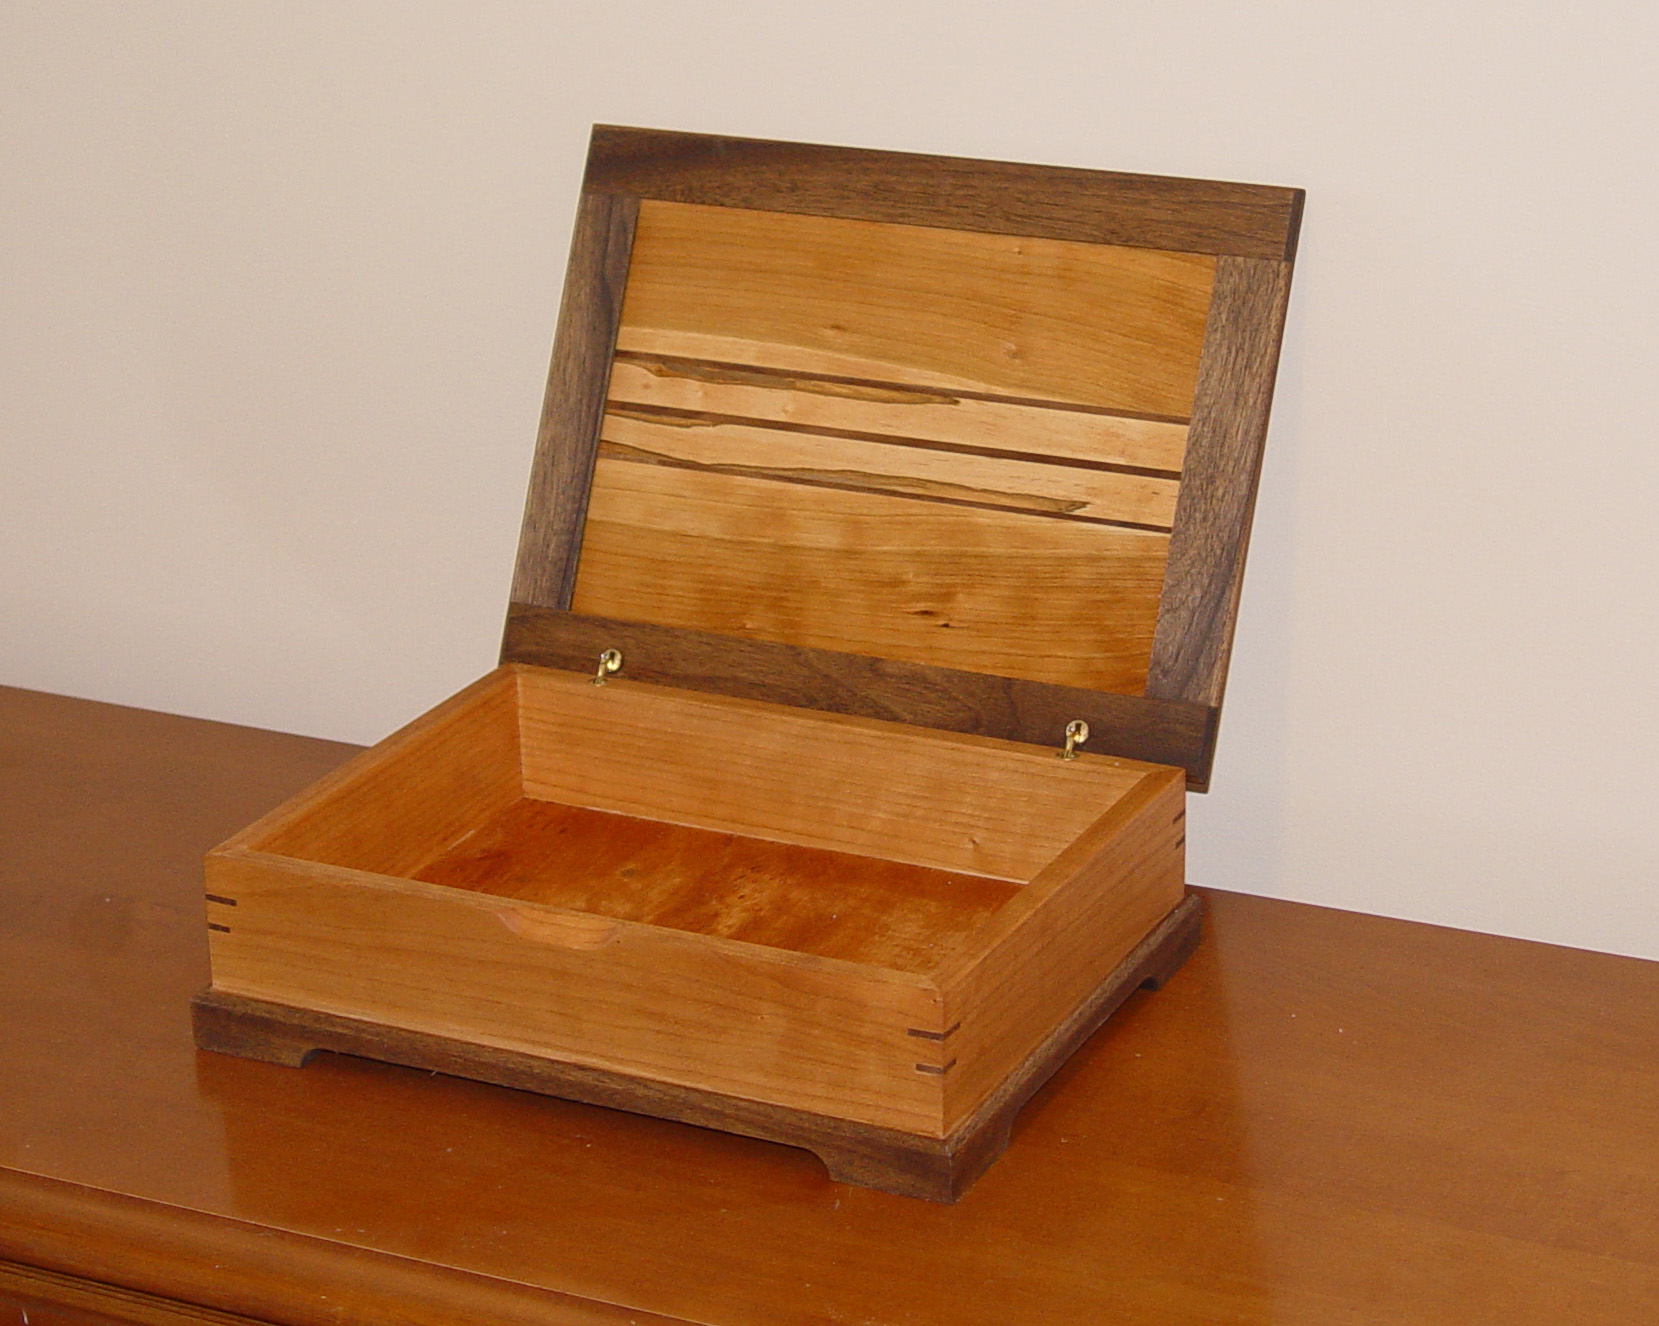 hidden box hinges. Hidden Box Hinges. Simple The Classical With Lid Open Showing Barrel Hinges H